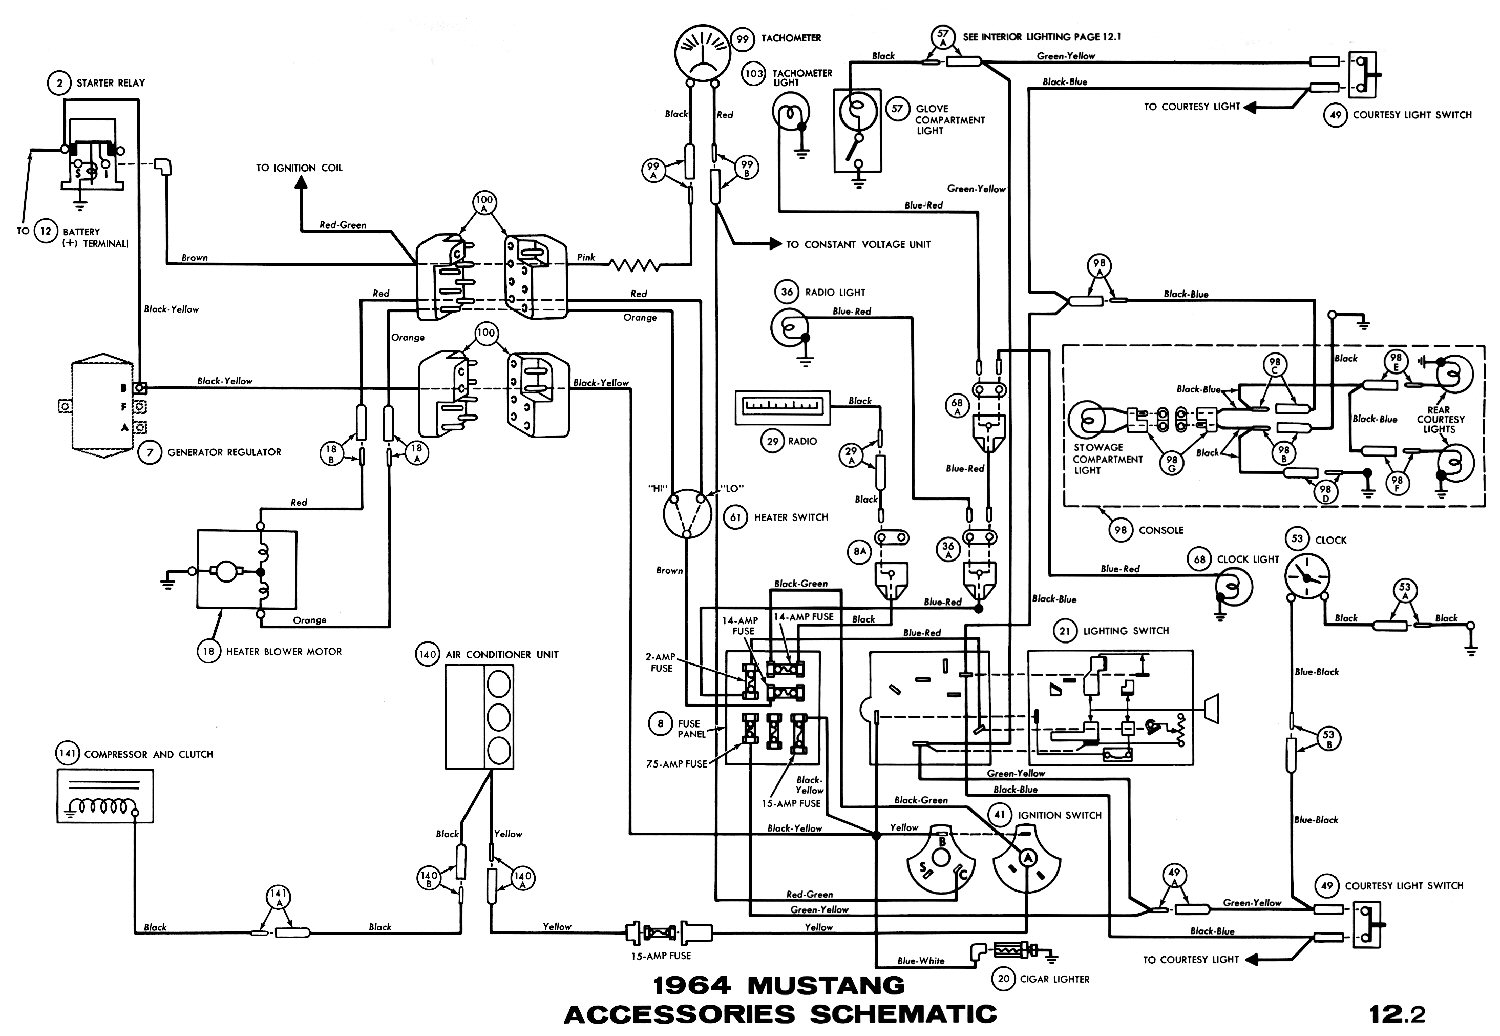 wiring diagram for emergency lighting switch polaris 1964 mustang diagrams - average joe restoration